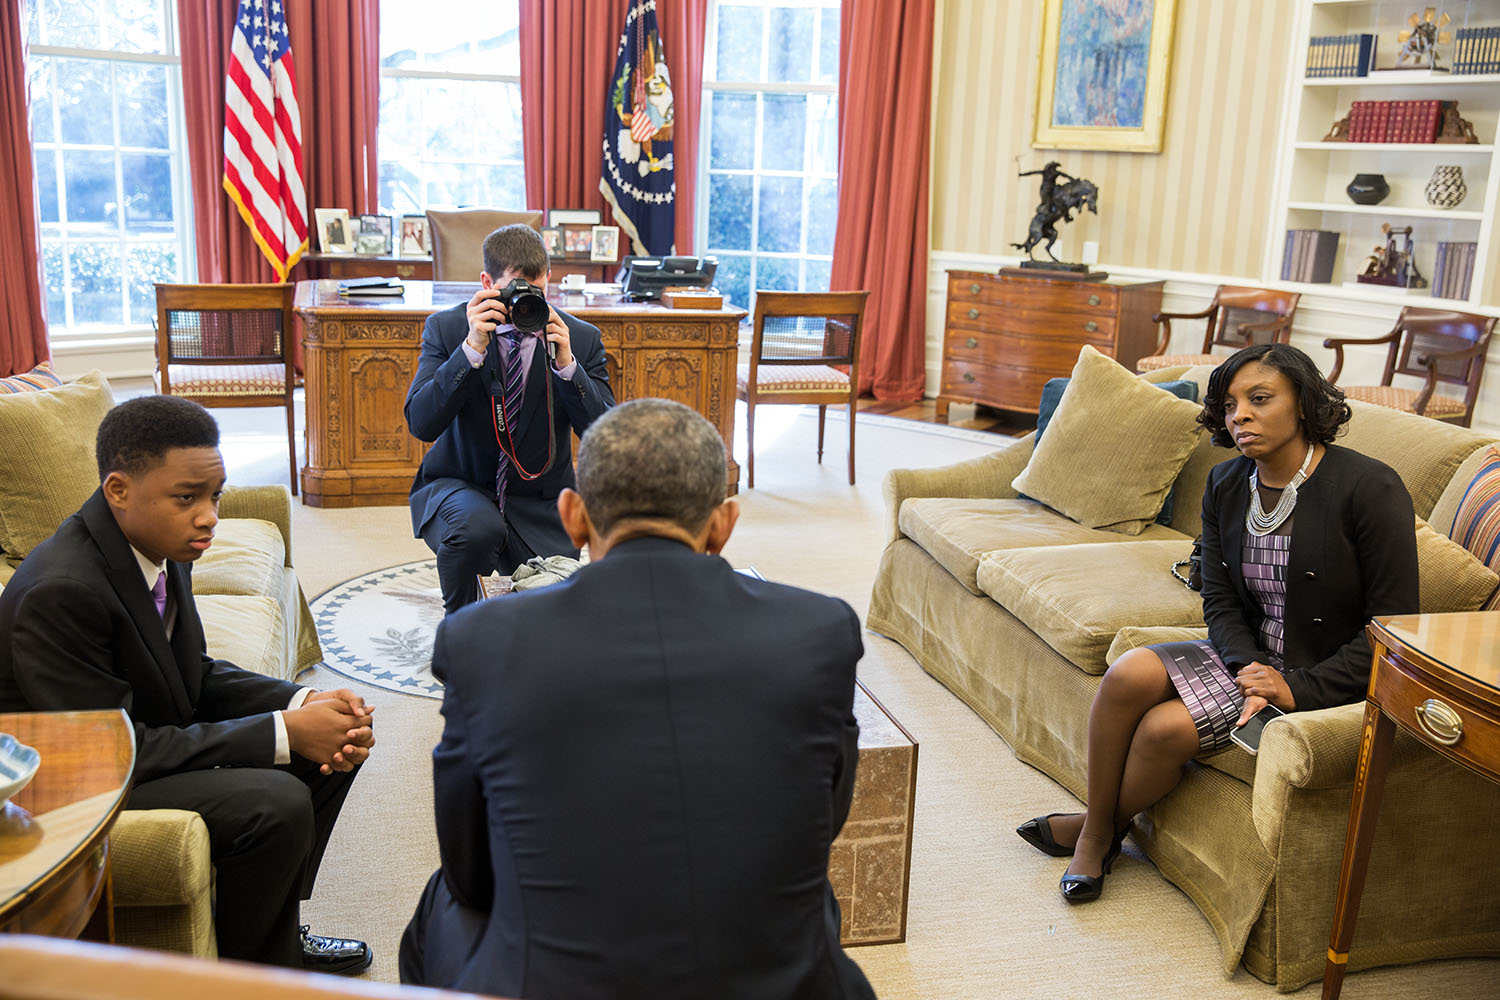 President Obama meets with Vidal and Nadia for